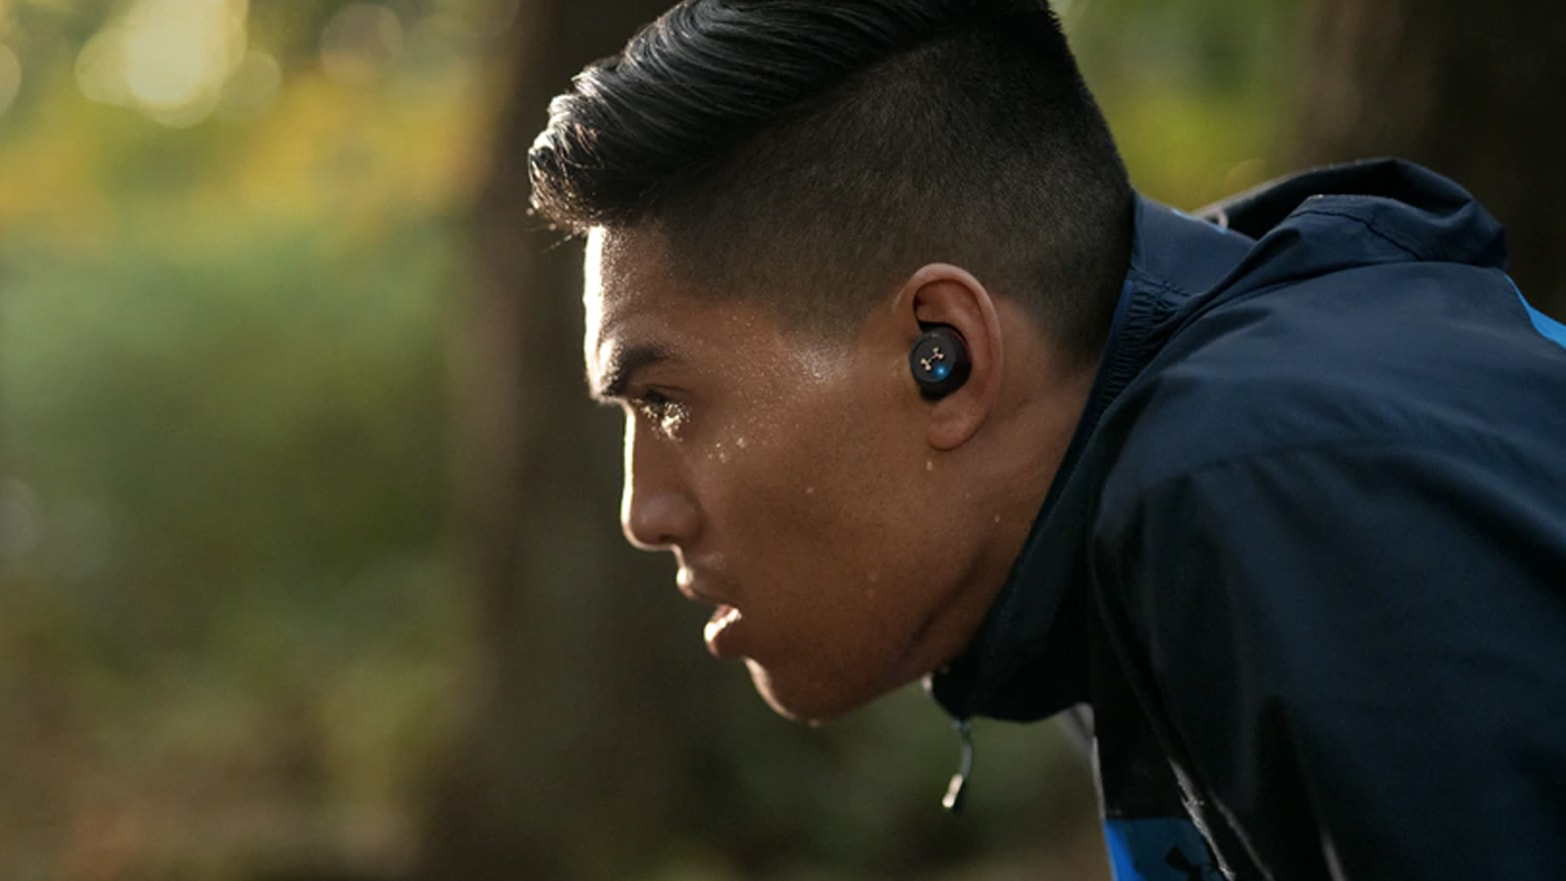 Wireless Earbuds Without the Lame Wireless Sound